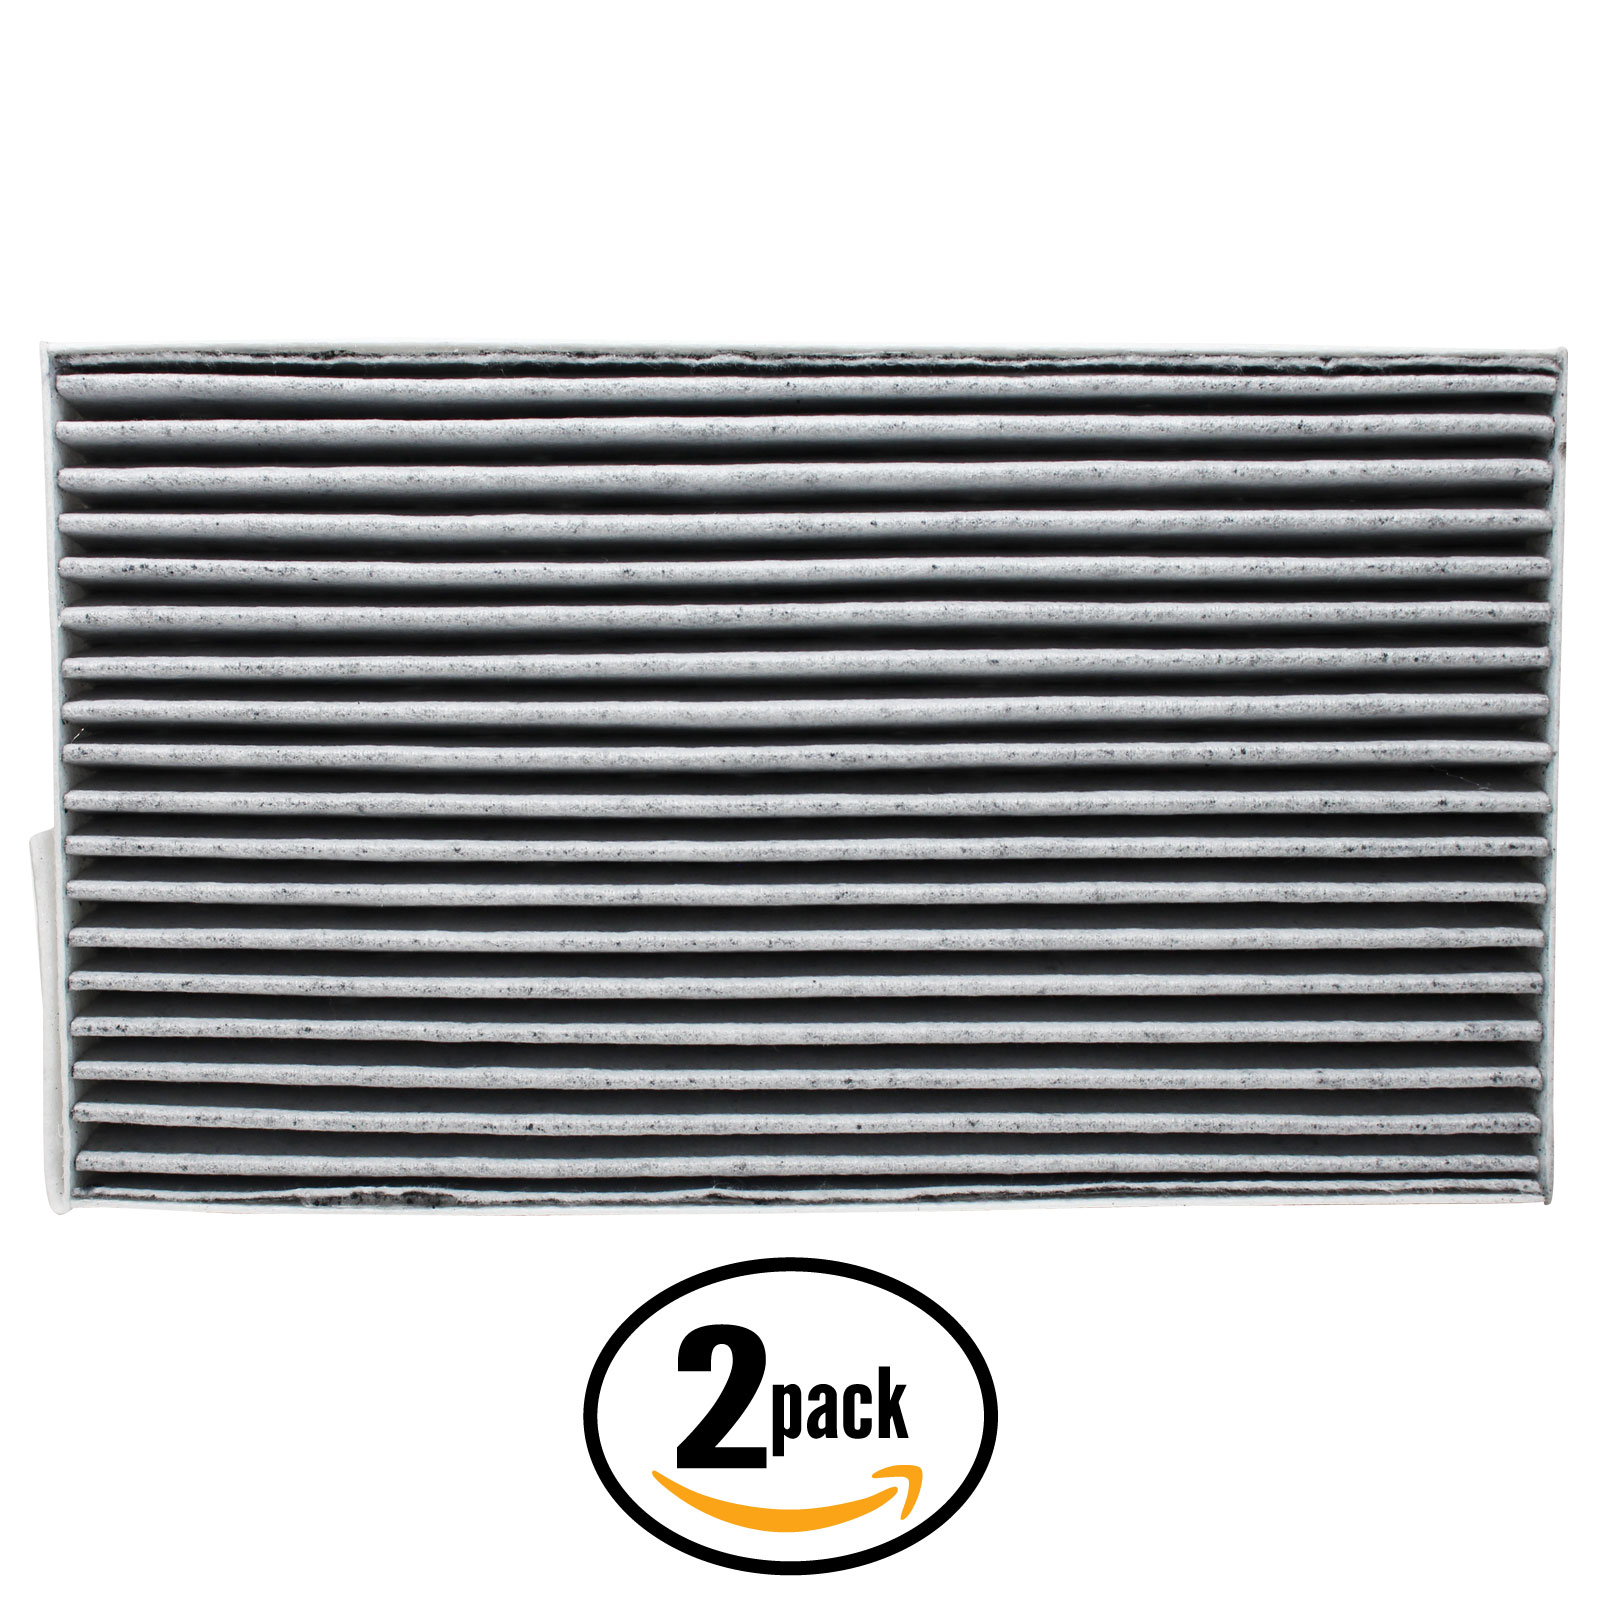 2-Pack Replacement Cabin Air Filter for 2013 Nissan Leaf ELECTRIC Car/Automotive - Activated Carbon, ACF-11177 - image 1 of 1